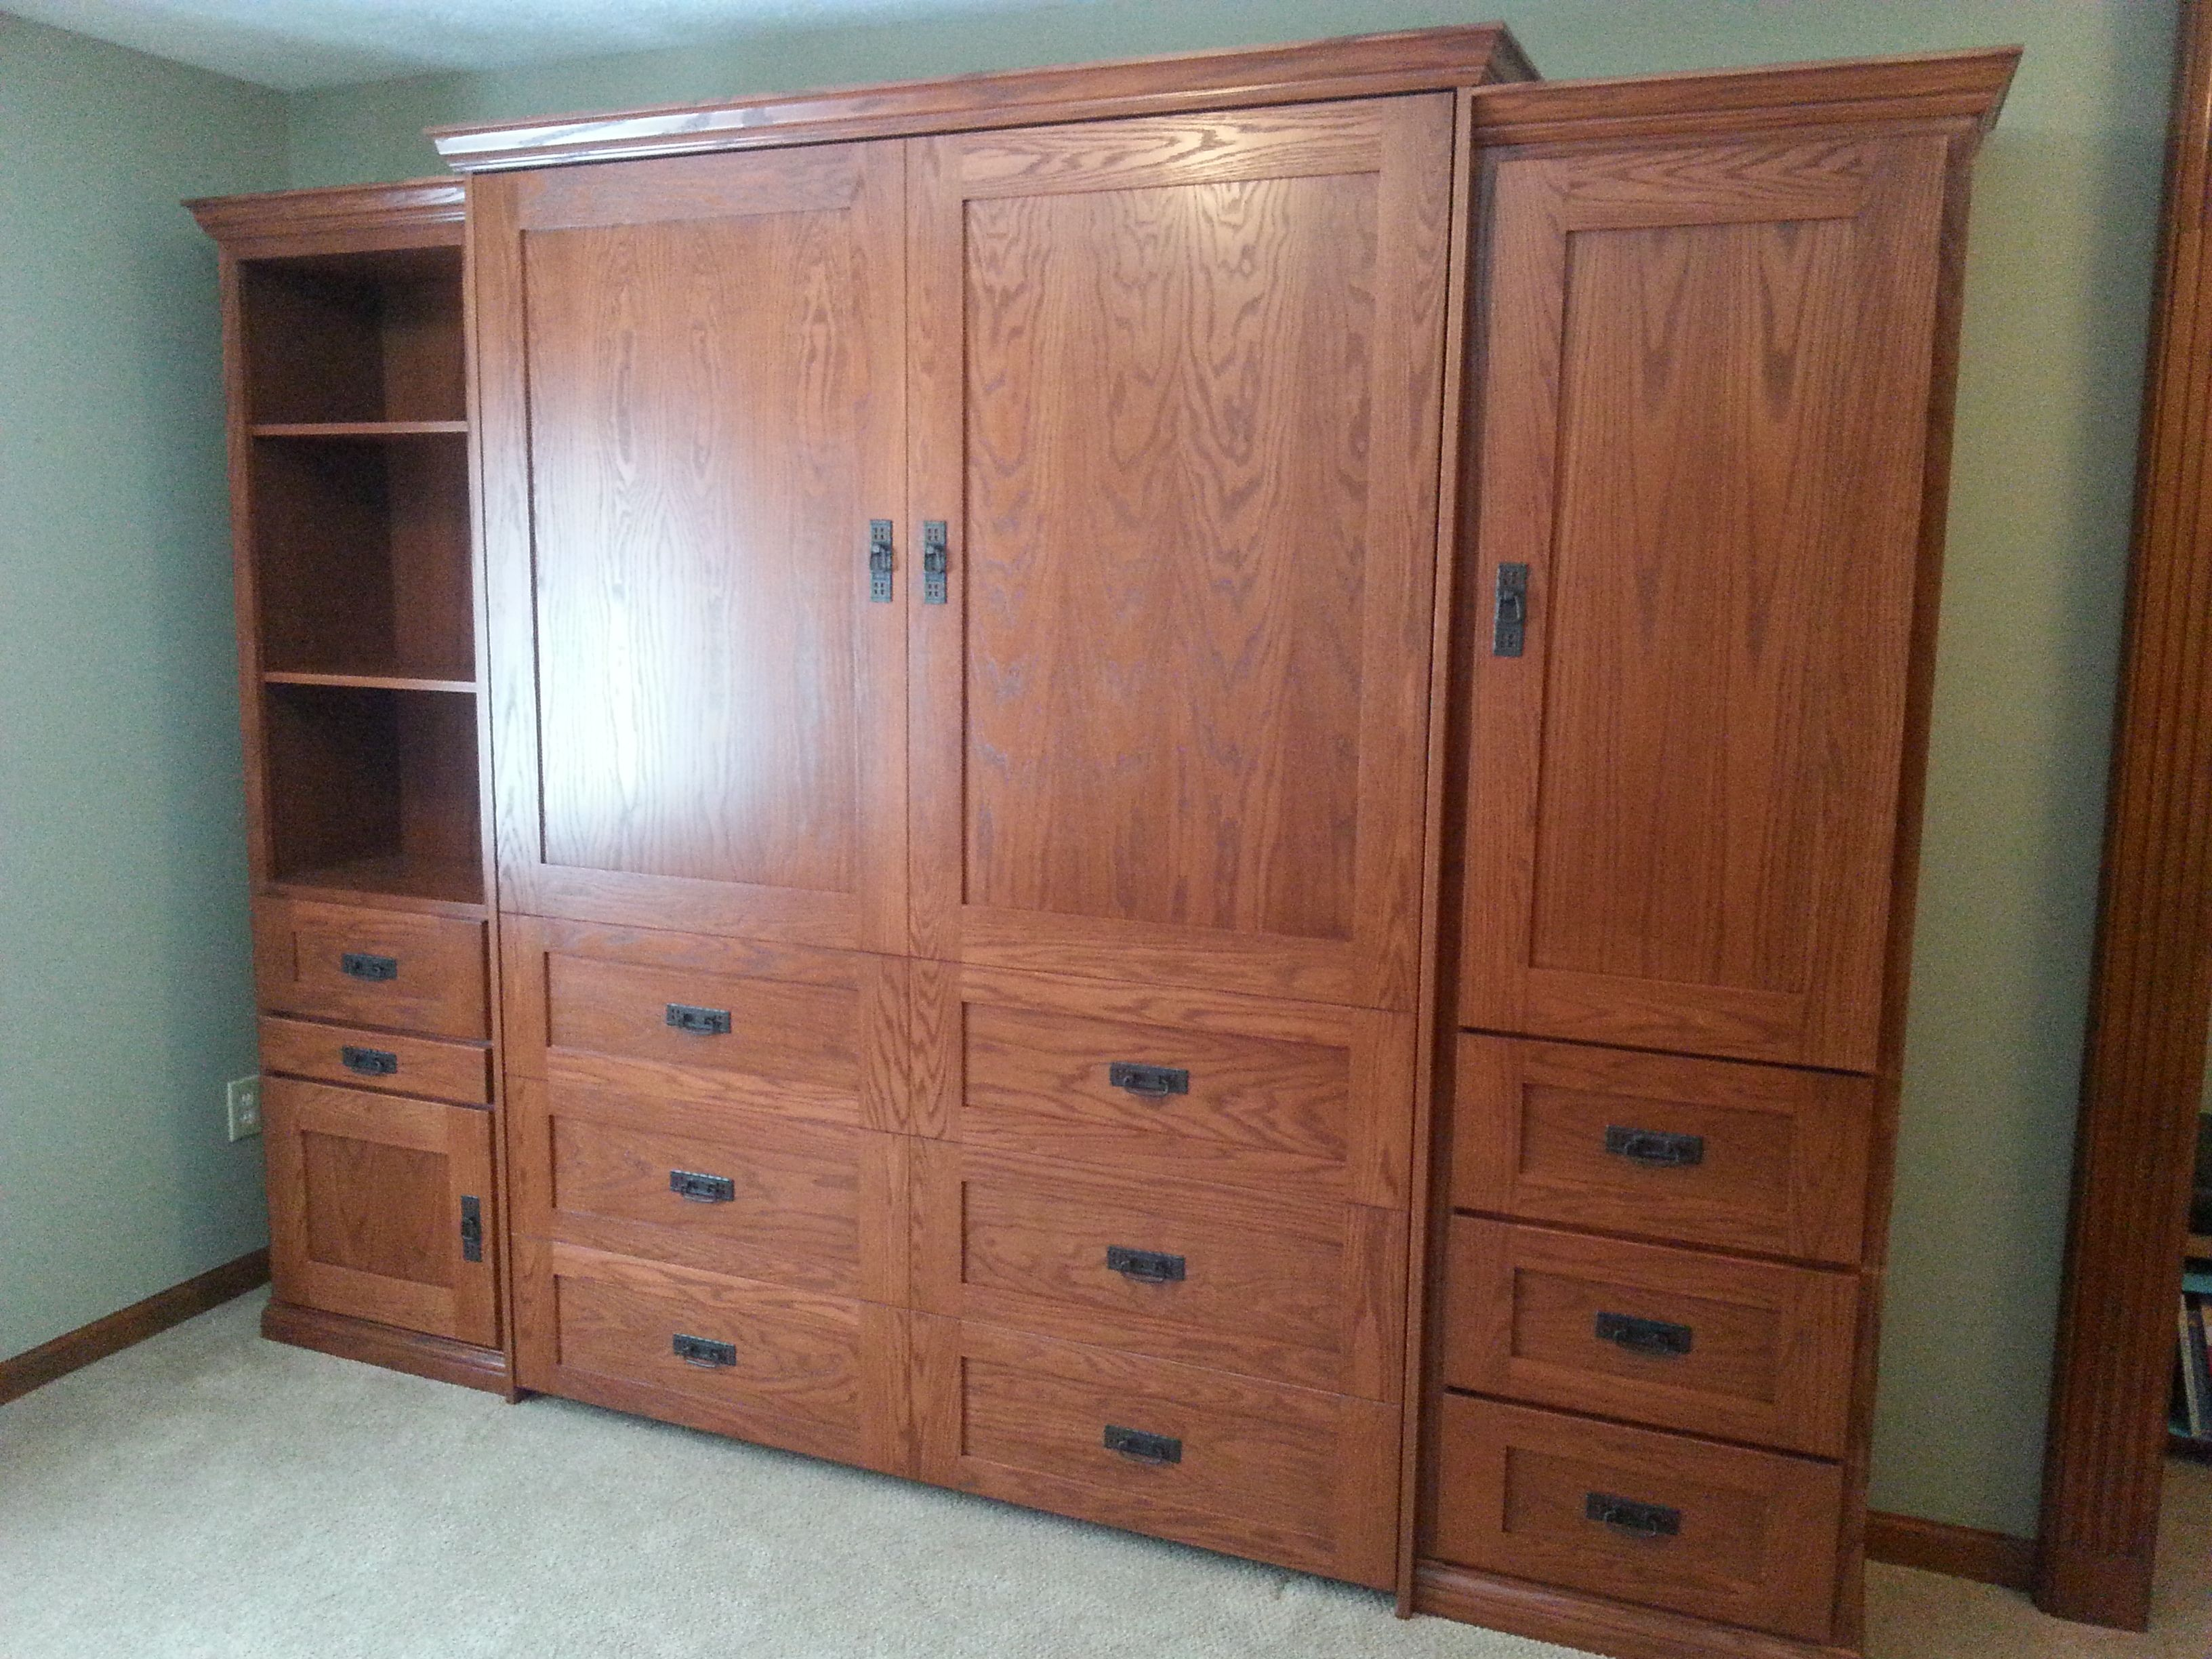 Our Customer Chose The Bedderway Horizontal Queen Dresser Cabinet Face